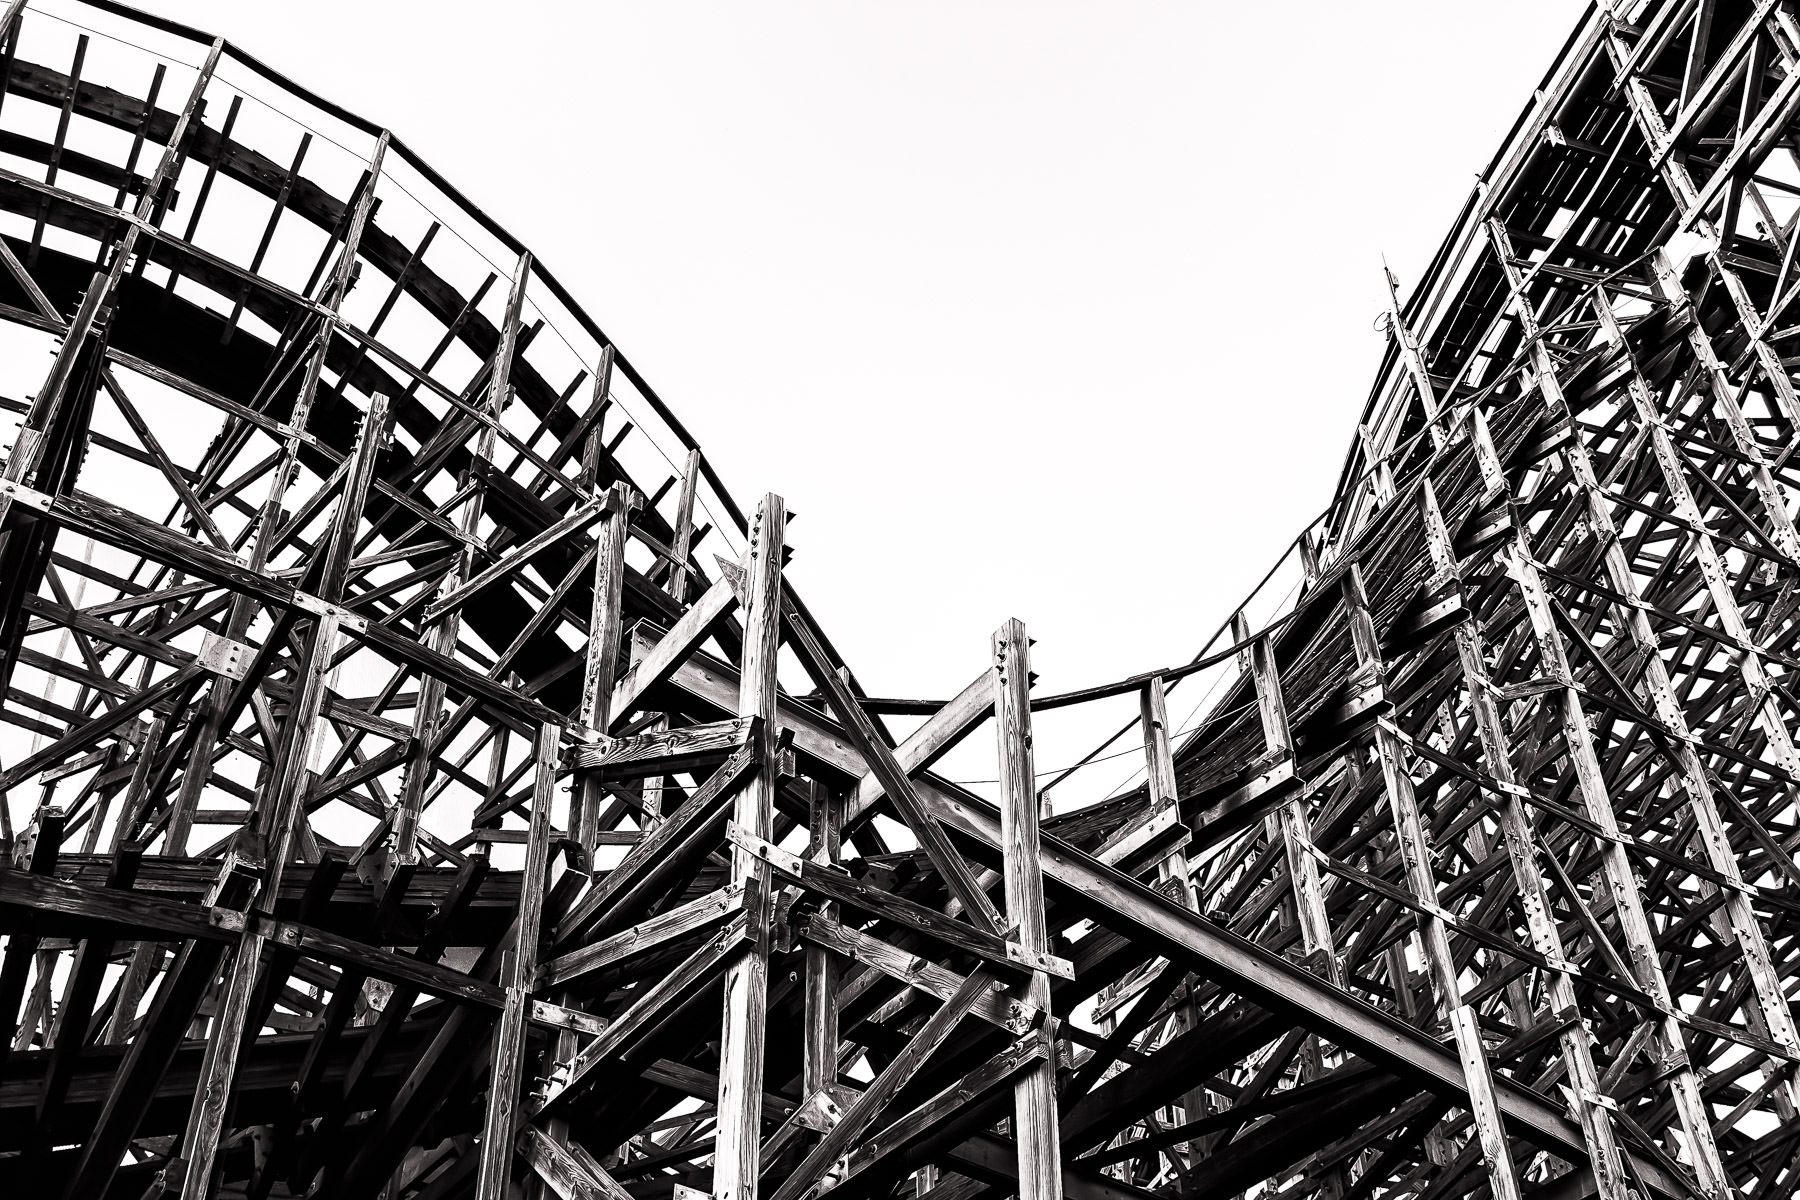 Detail of the wooden supports of the Boardwalk Bullet—the roller coaster at the Kemah Boardwalk in Kemah, Texas.